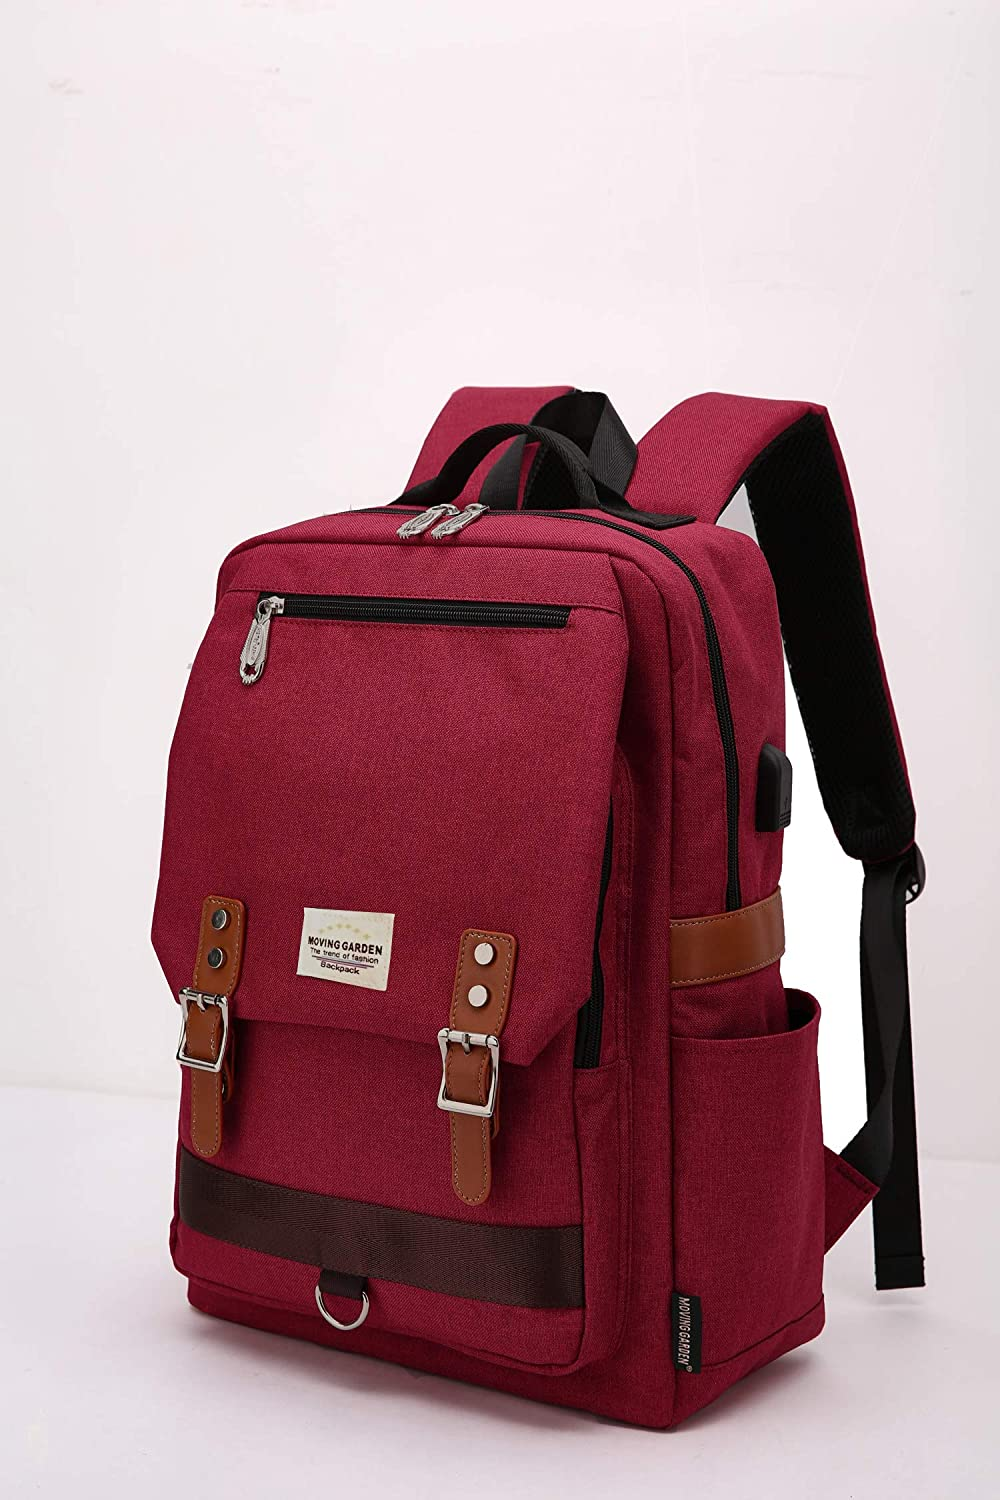 94526870a1 Amazon.com  MOVING GARDEN Laptop Backpack for Women Men